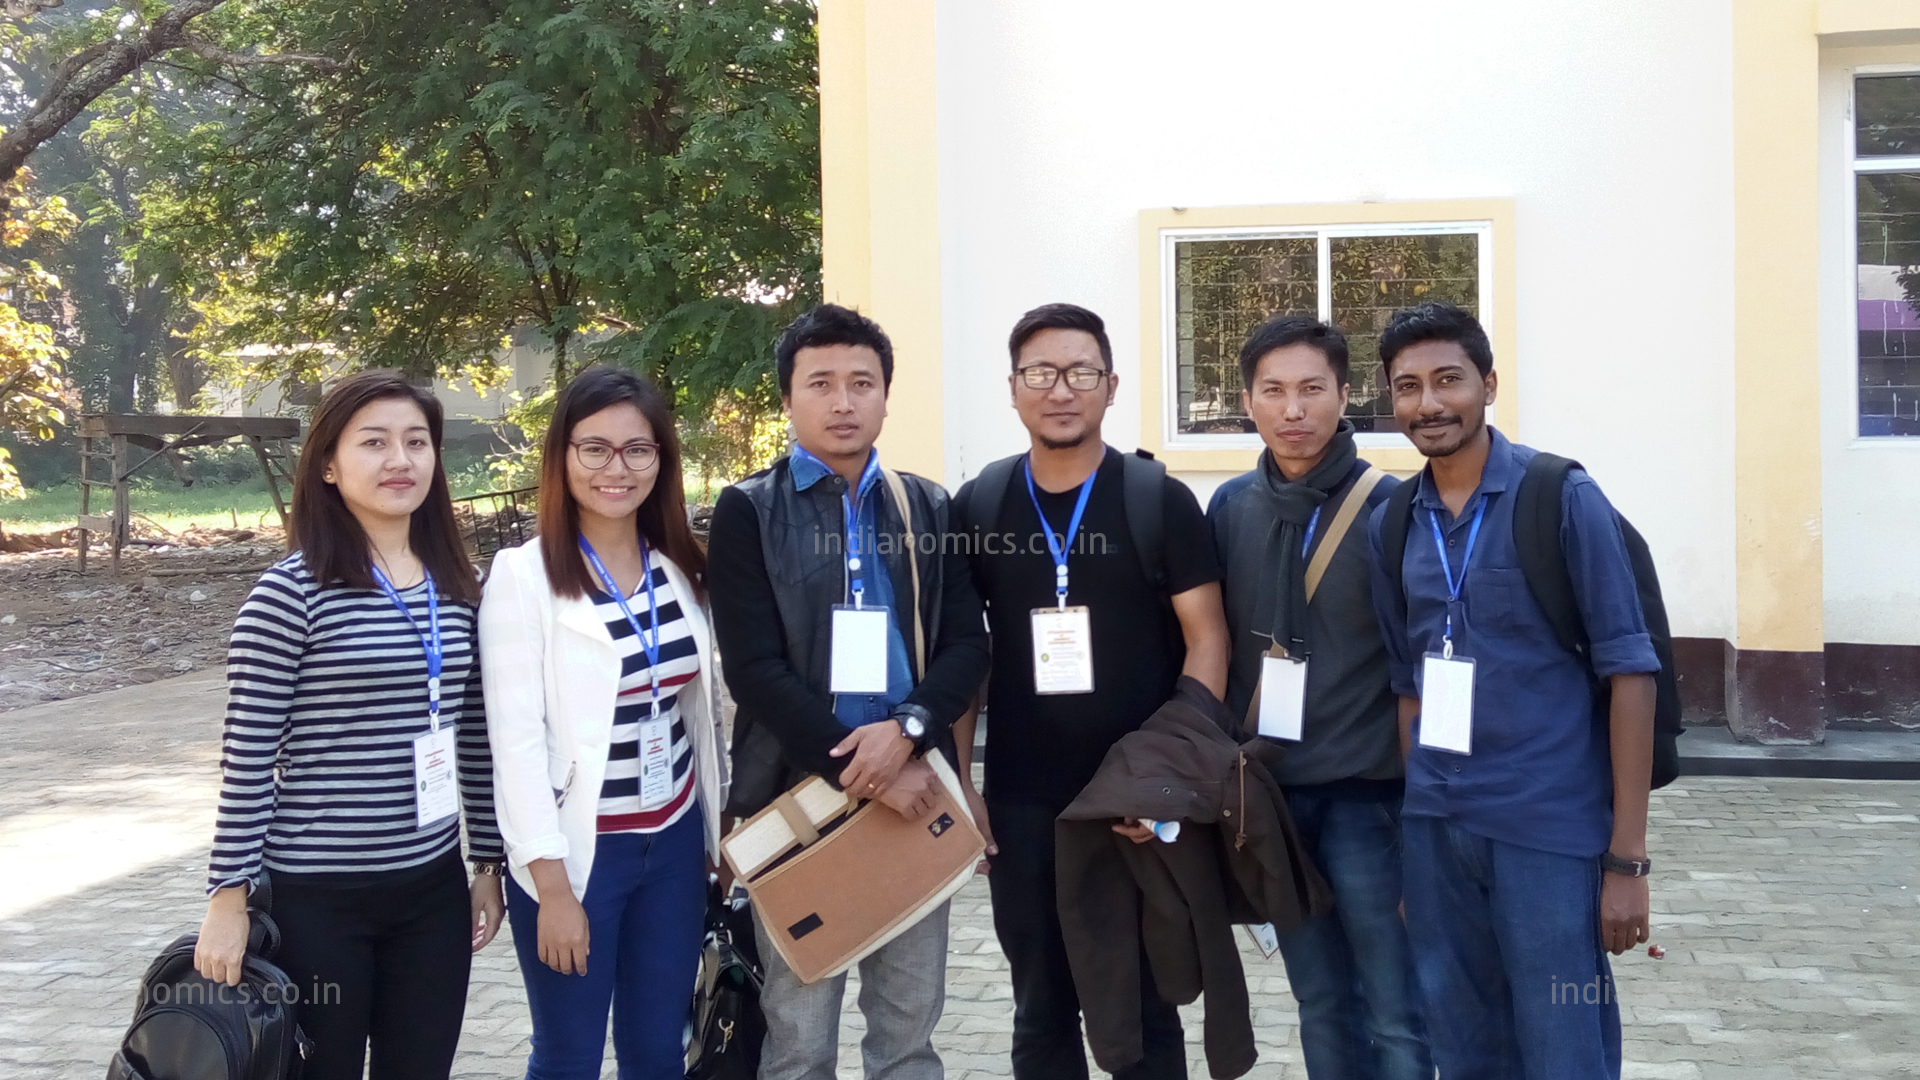 Vincent with his colleagues, University of Mizoram